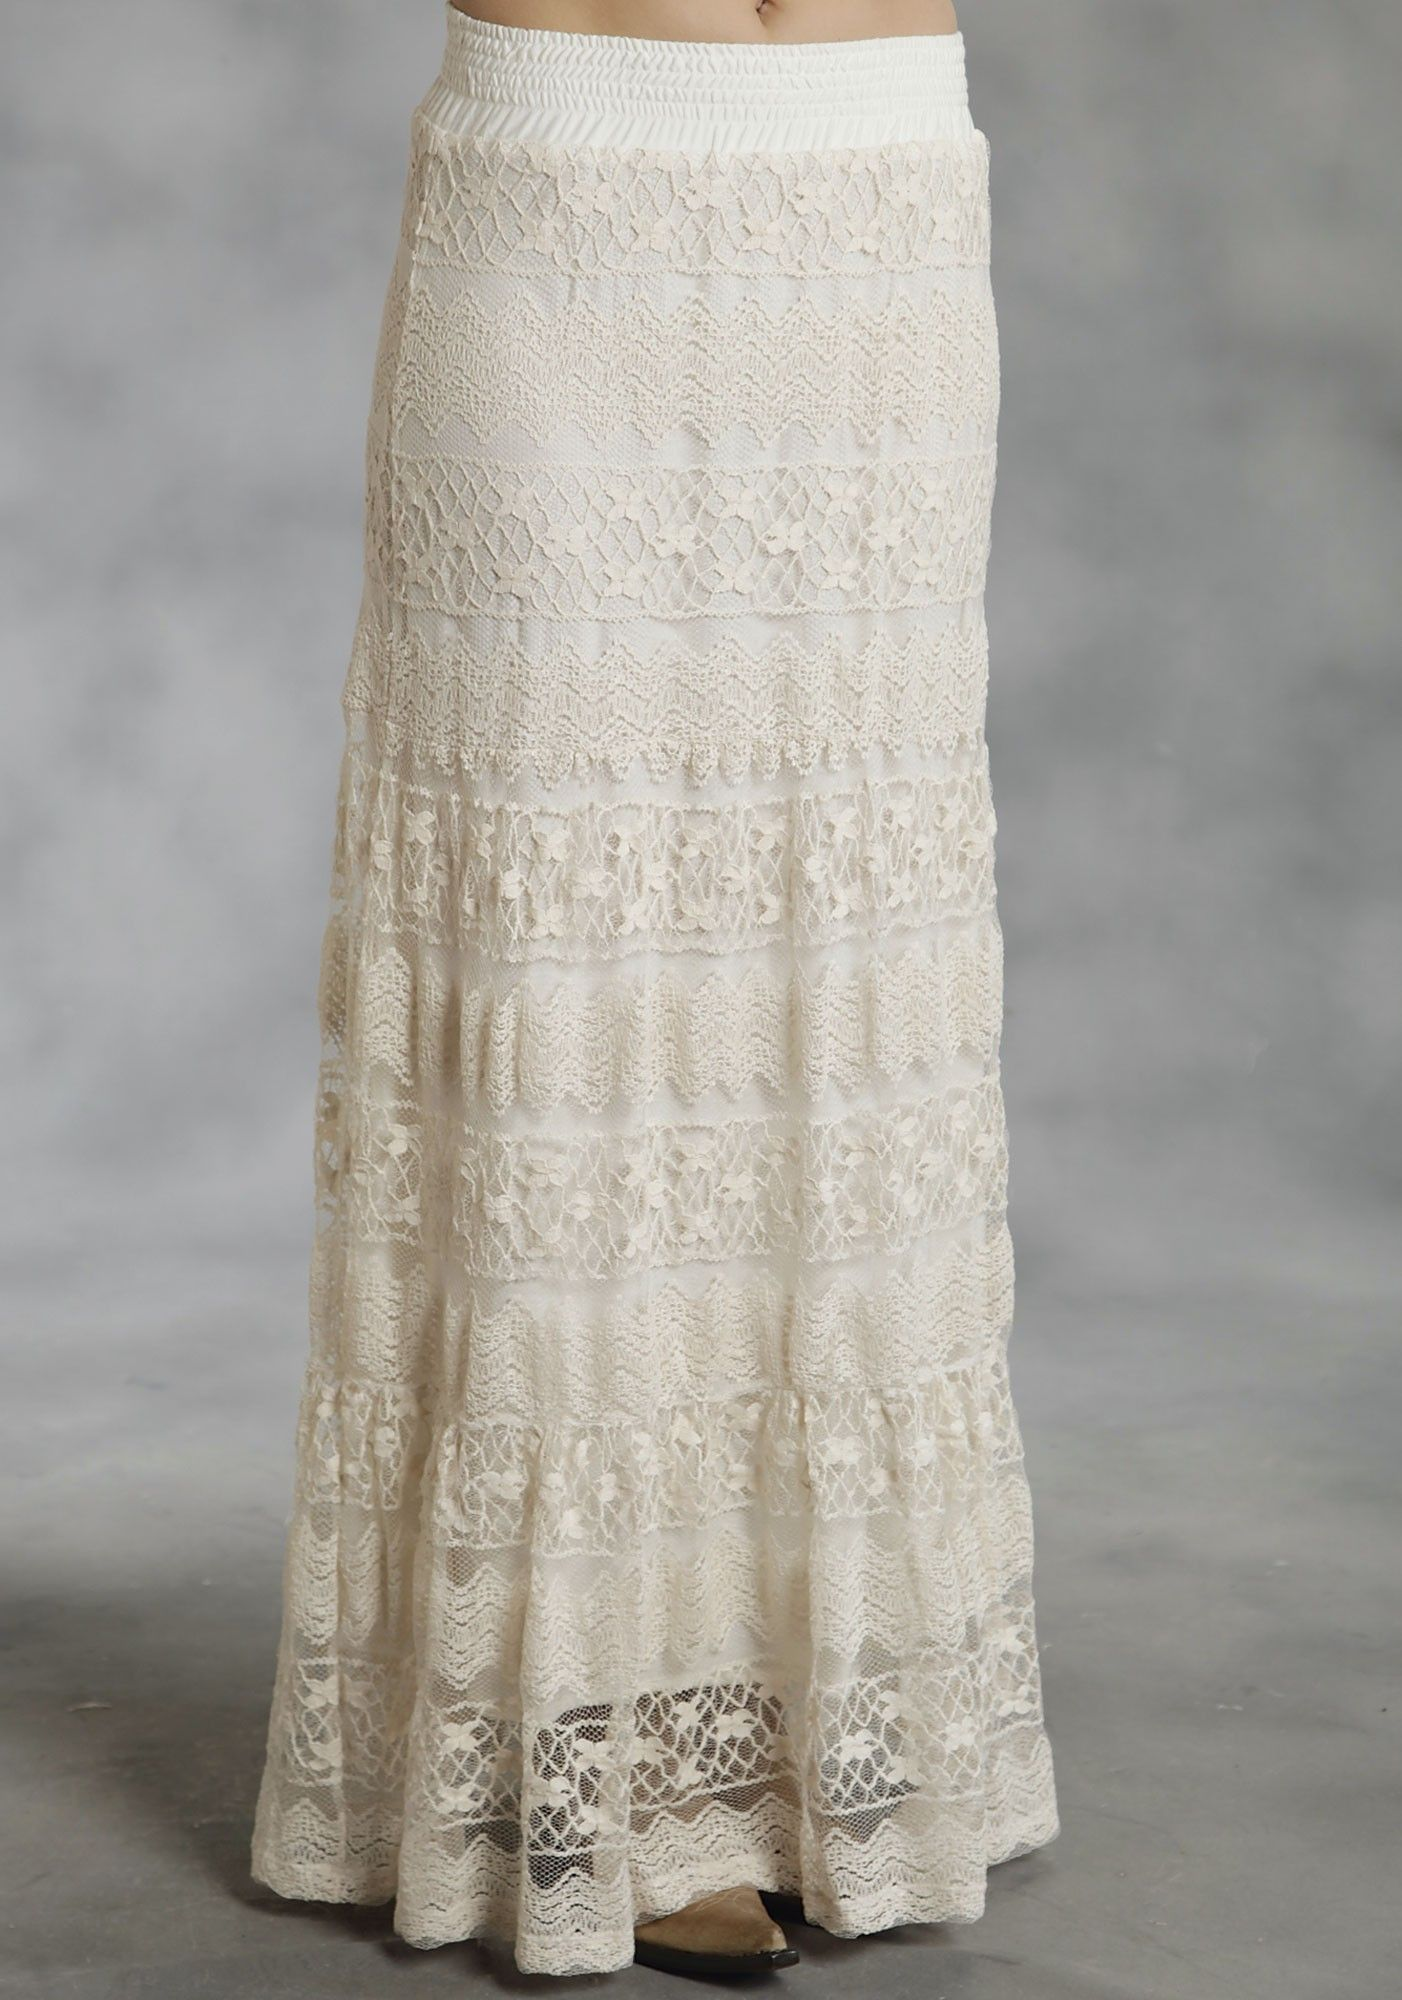 3 tiered allover lace s western skirt horses westerns clothes and